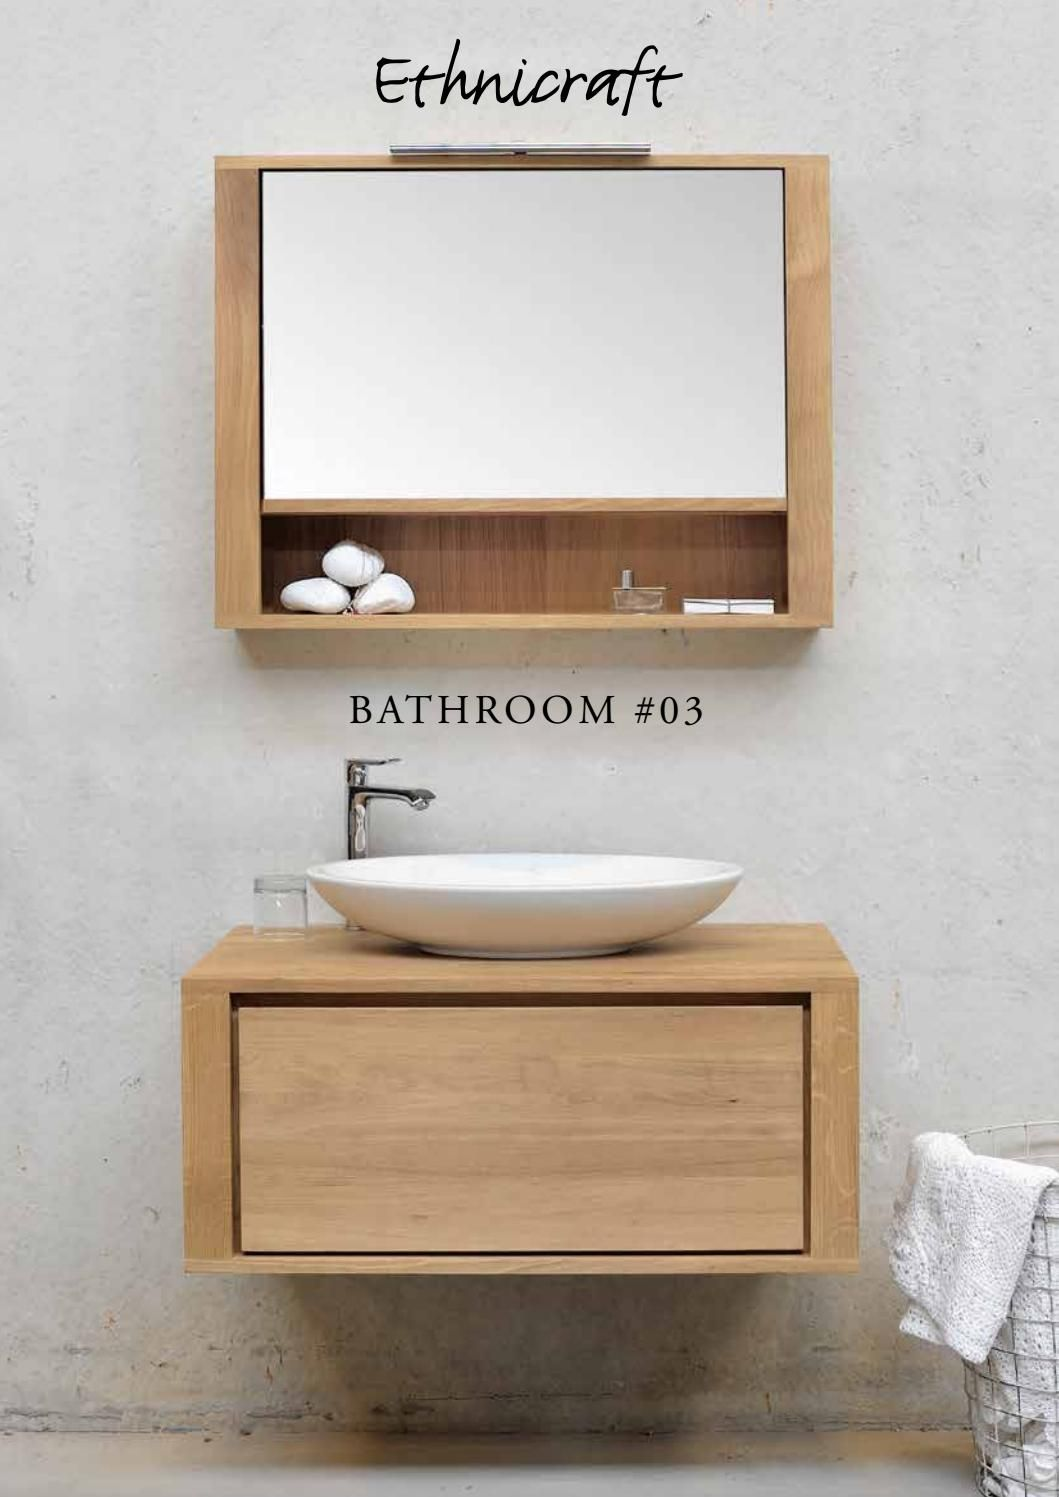 Ethnicraft Bathroom Catalogue 2016 En Bathrooms